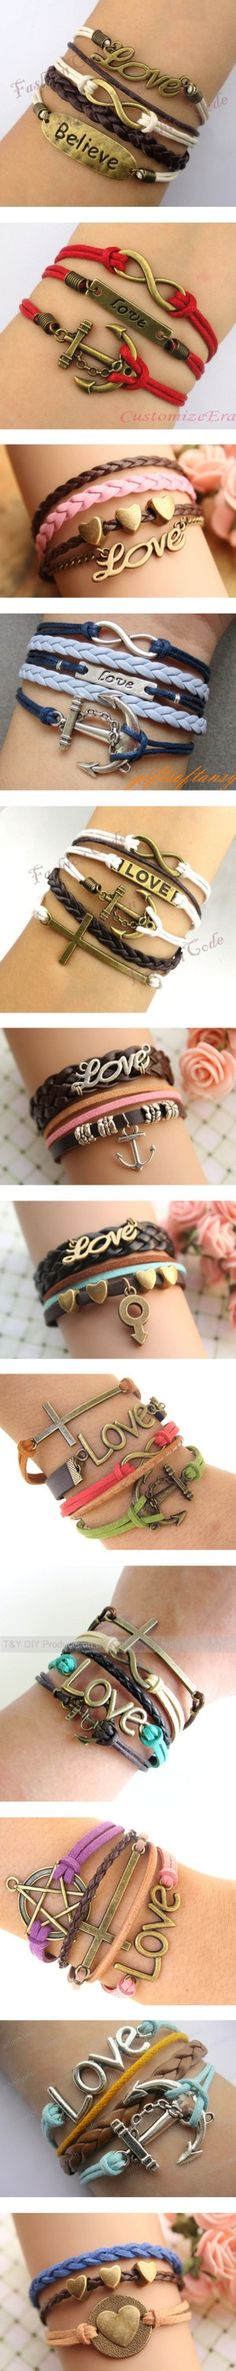 all of them please bling, fashion, cloth, accessories craft, bracelets, beauti, closet, hair, diy